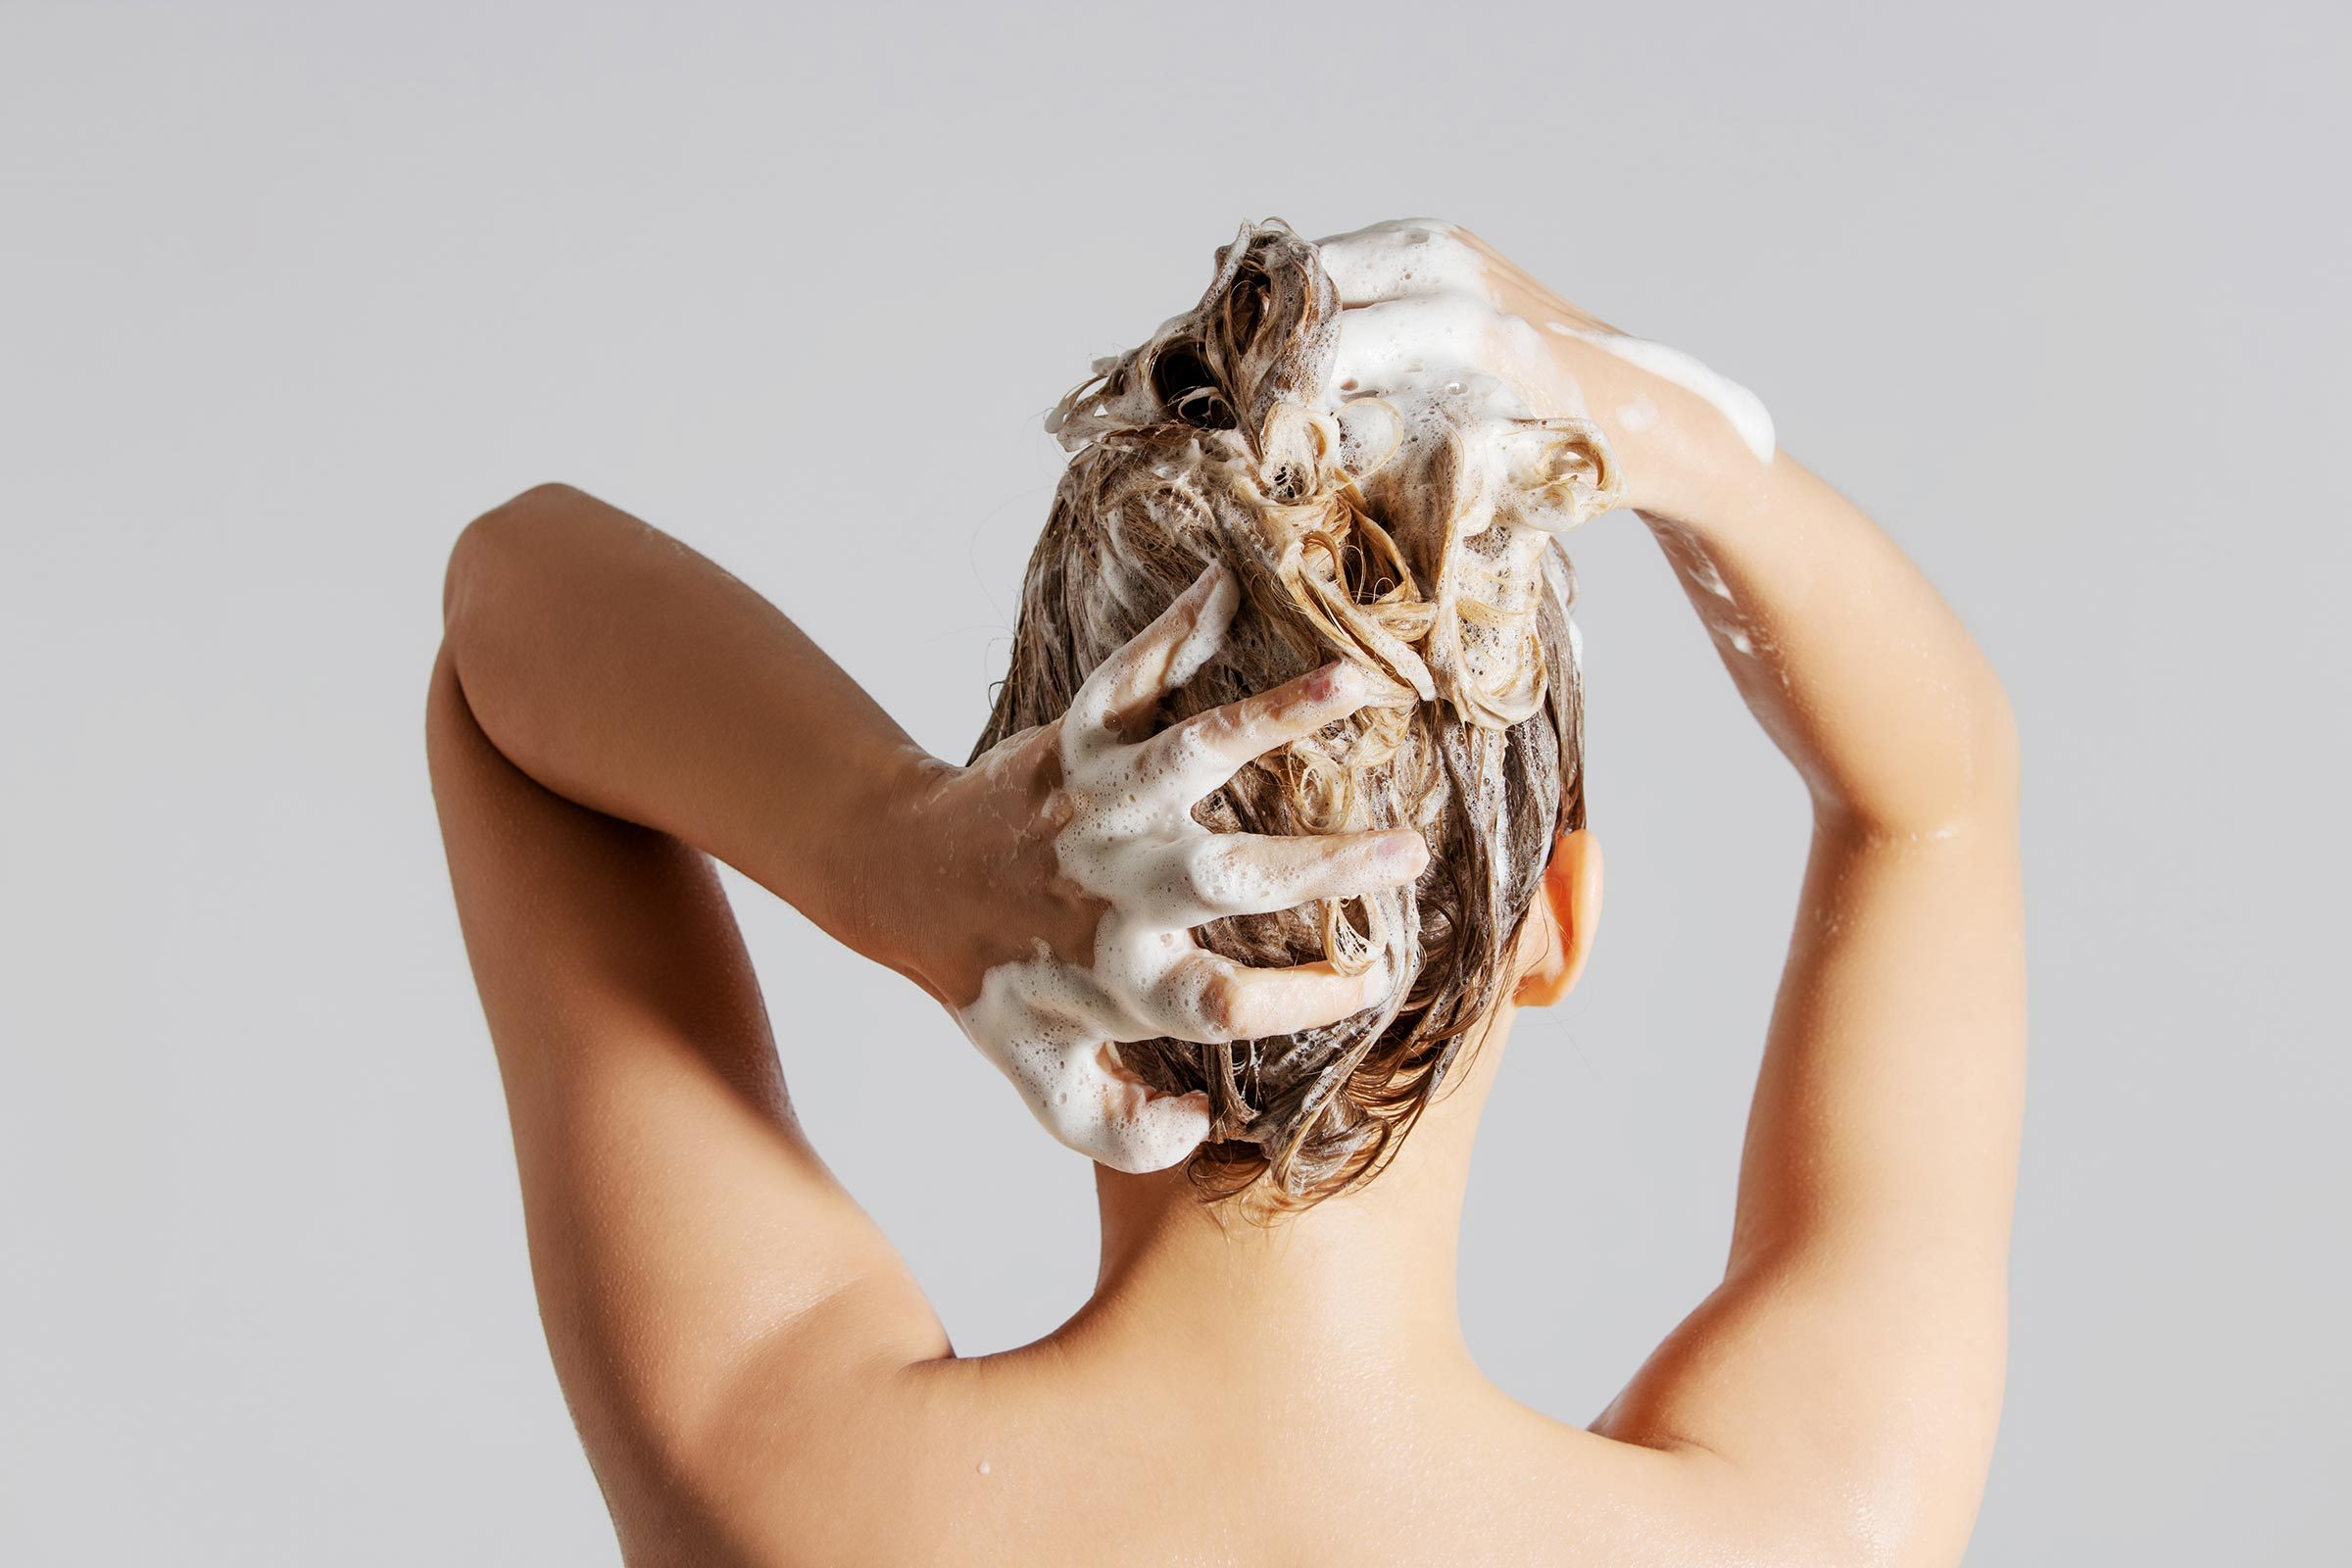 woman shampoo wash hair